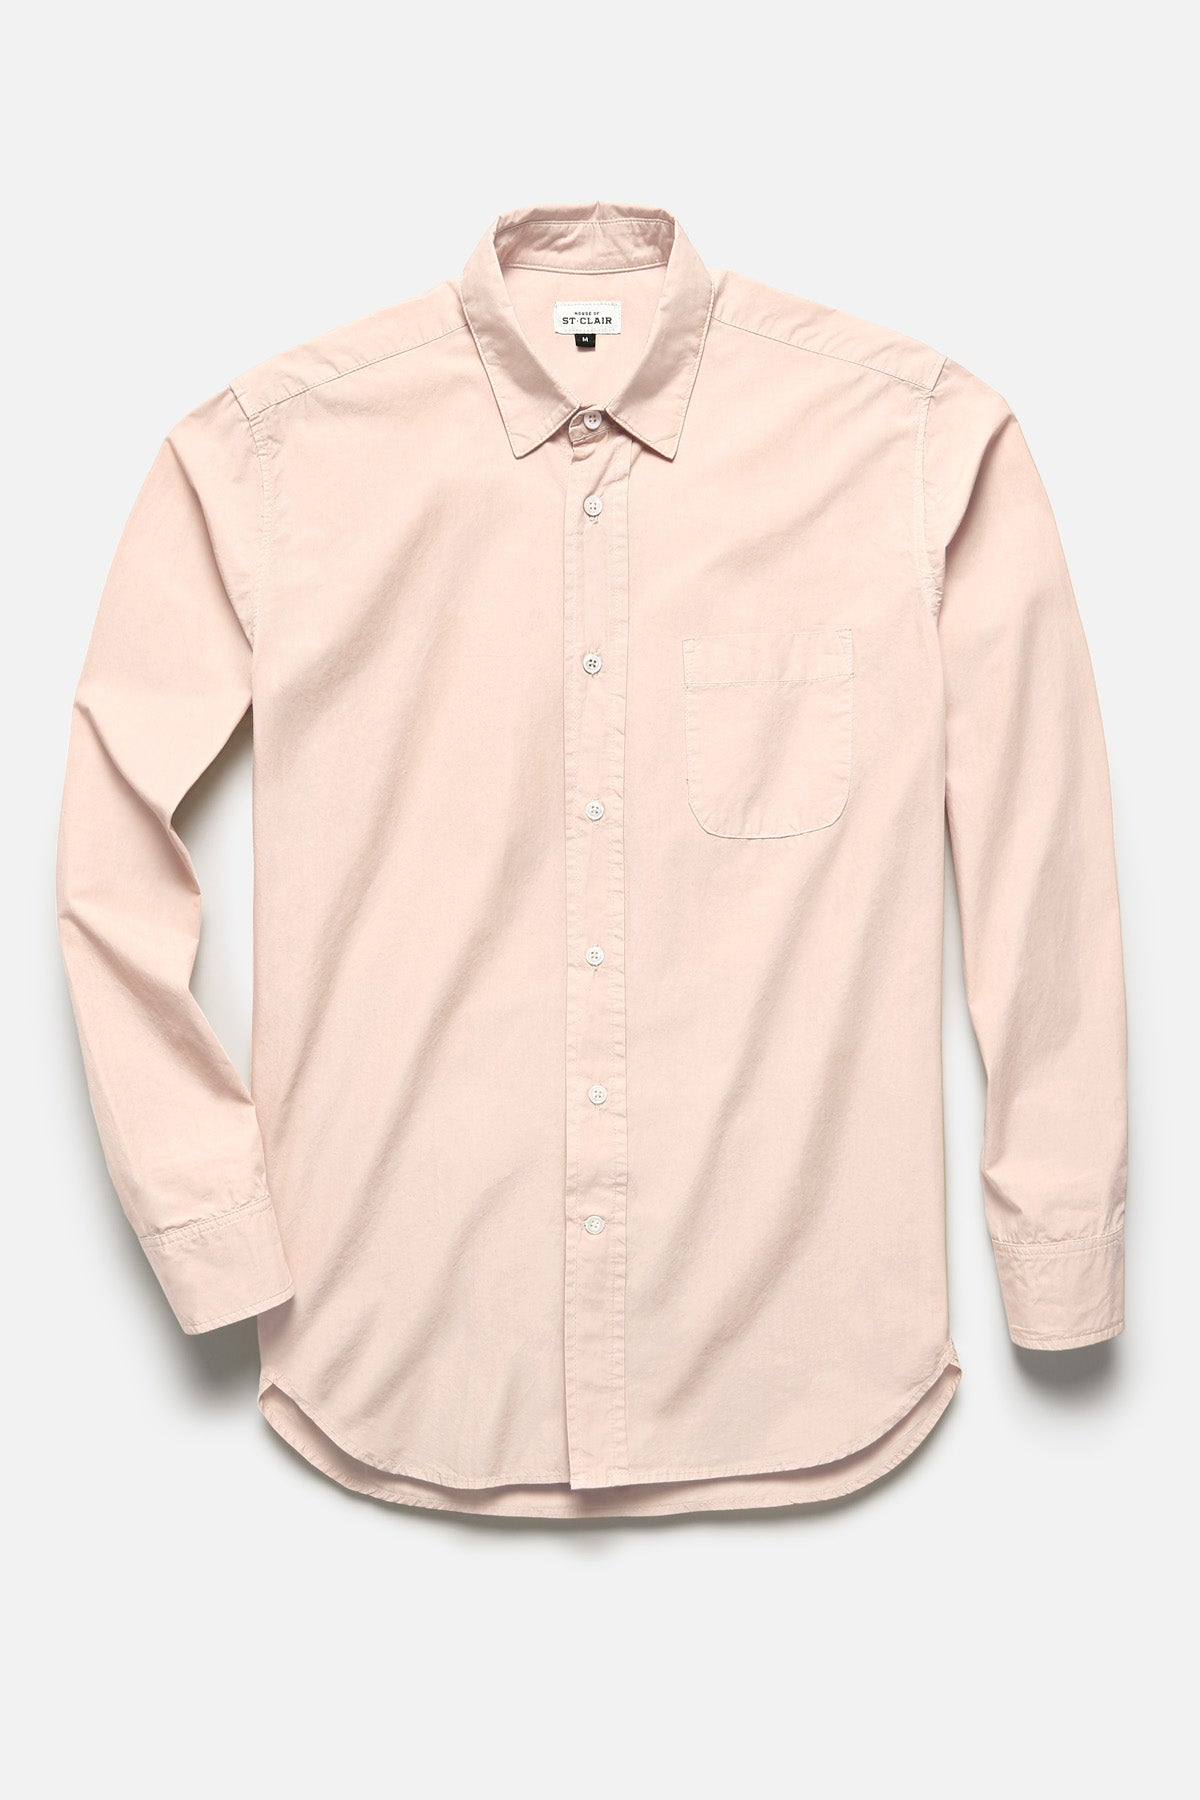 1905 SHIRT IN PEACH IVORY TYPEWRITER - Fortune Goods